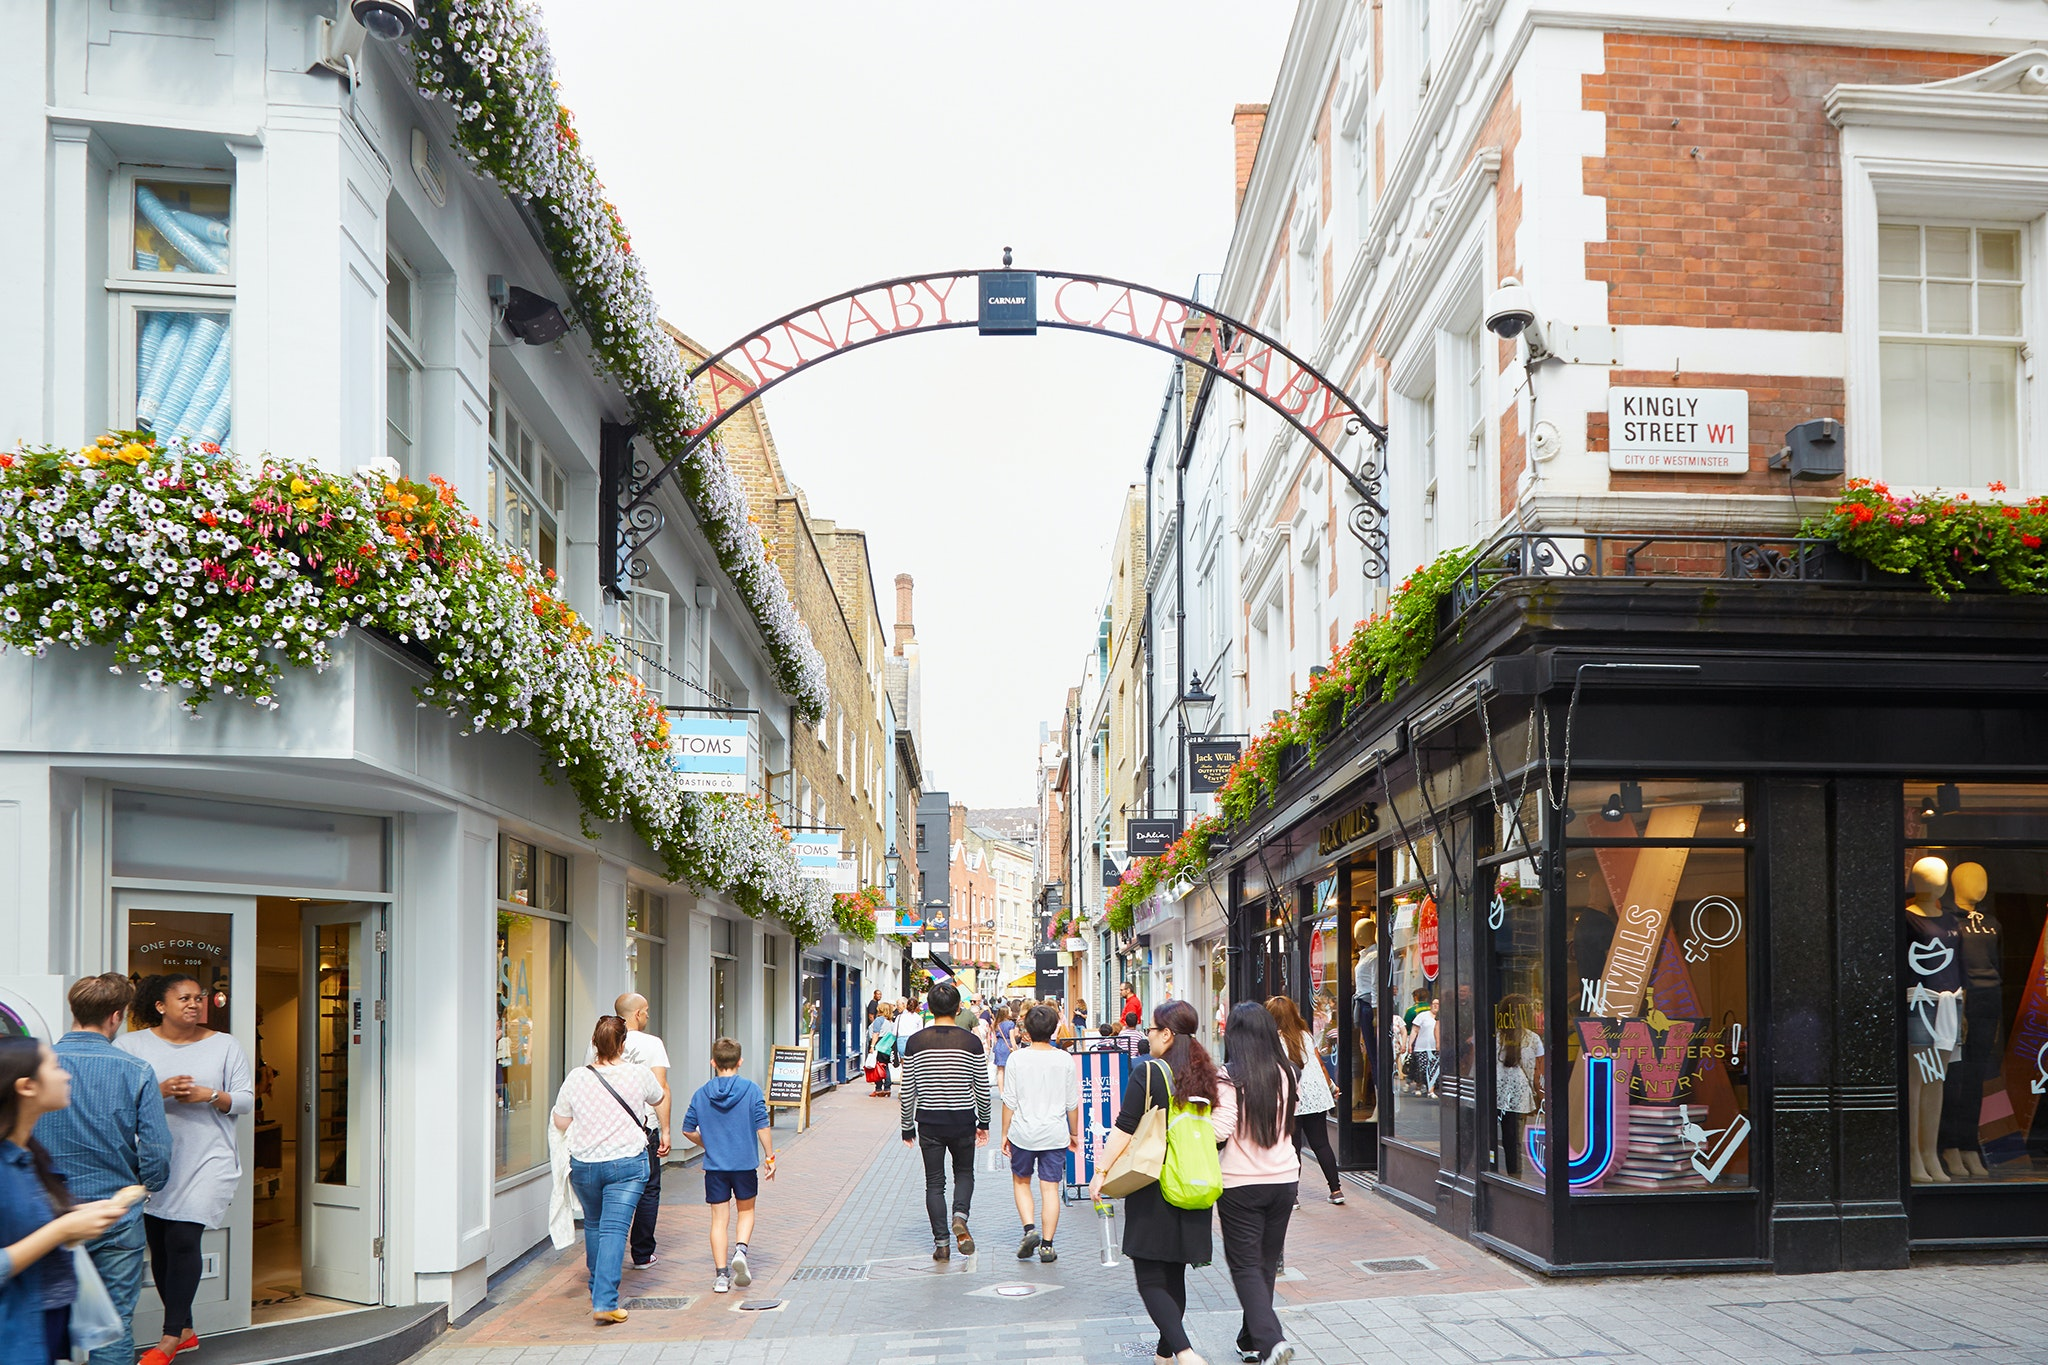 Carnaby Street should please those in search of shopping.